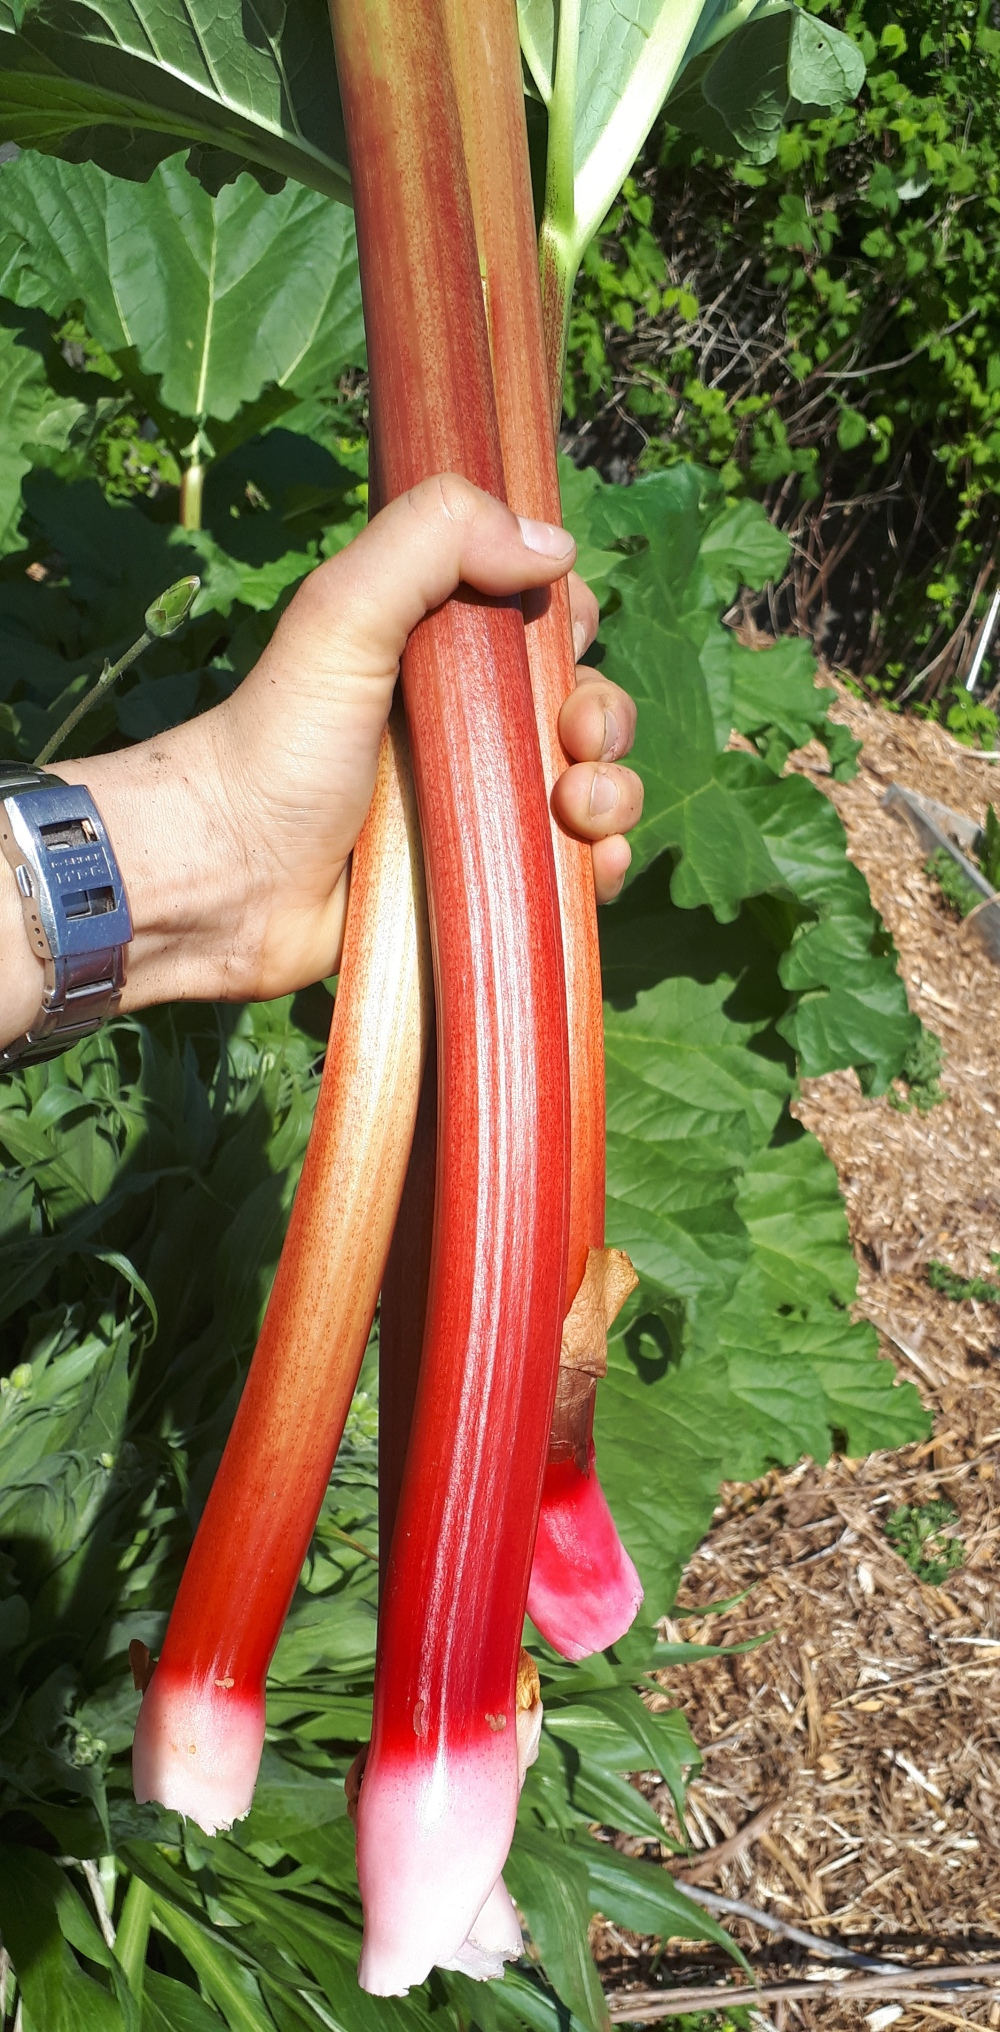 Maple Meadows Brewing - fresh local rhubarb for fresh local craft beer